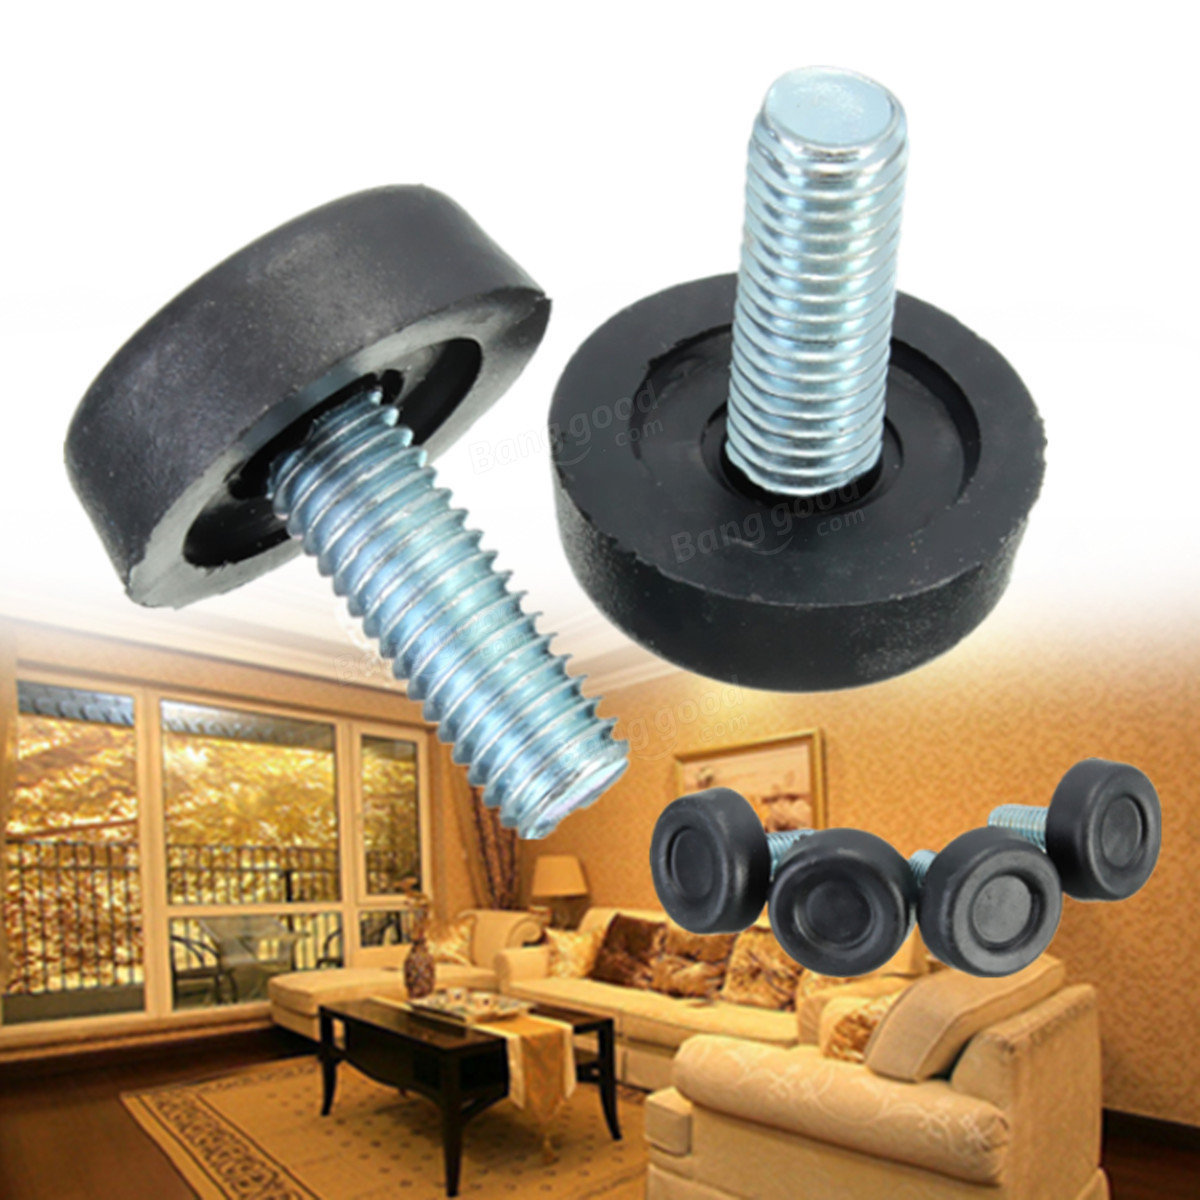 M8x20mm Thread Table Desk Adjustable Levelling Furniture Foot Screw Sale Sold Out